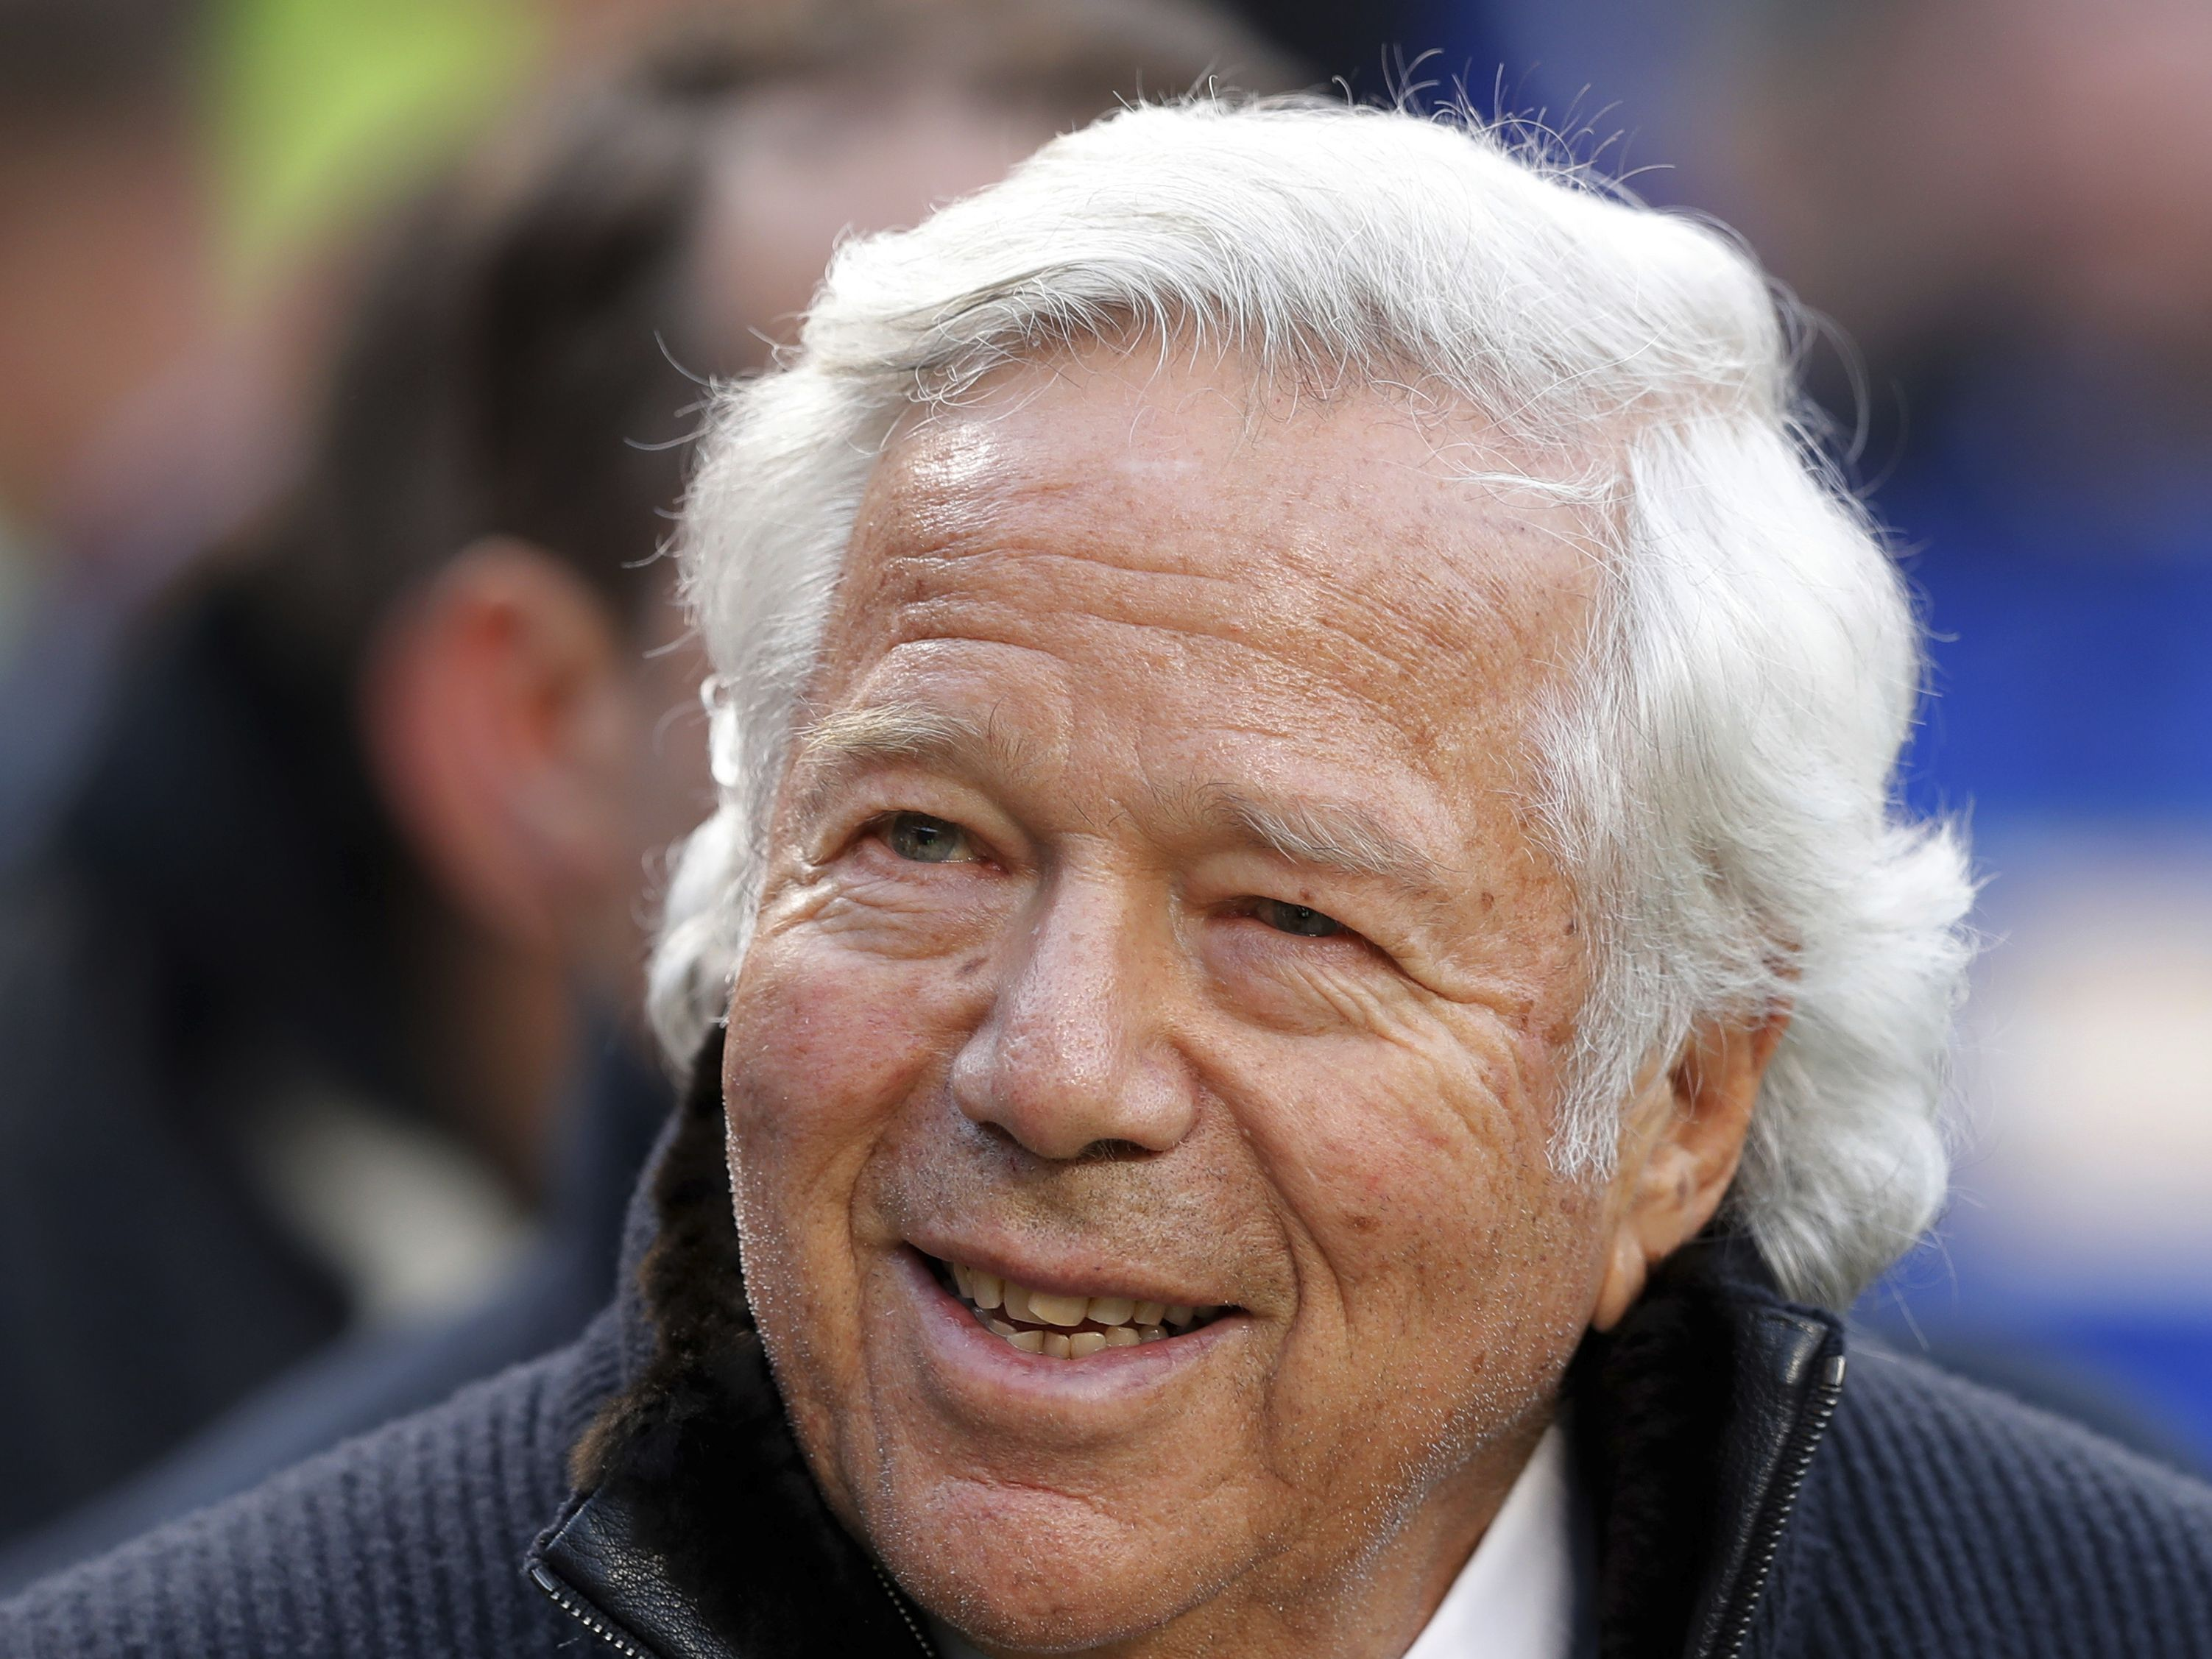 Police: Patriots owner Robert Kraft to be charged with soliciting prostitute in Florida